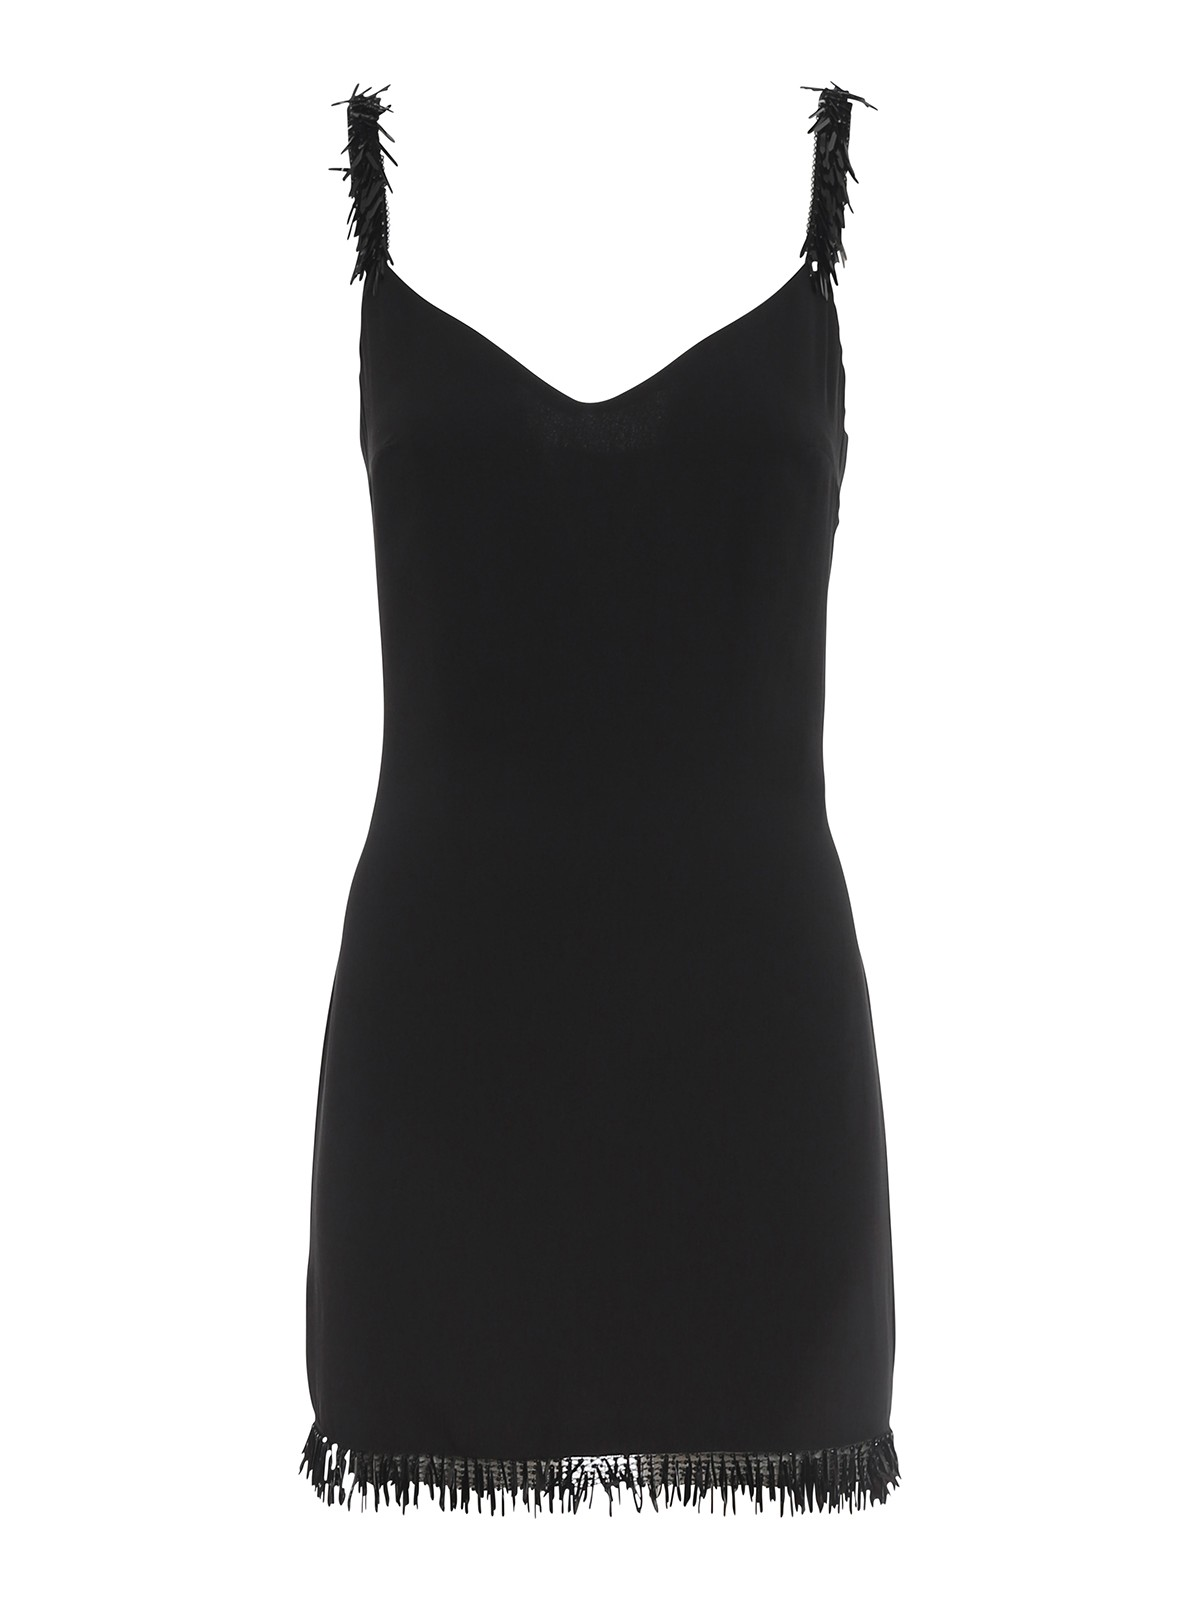 Elisabetta Franchi EMBELLISHED GEORGETTE MINI DRESS